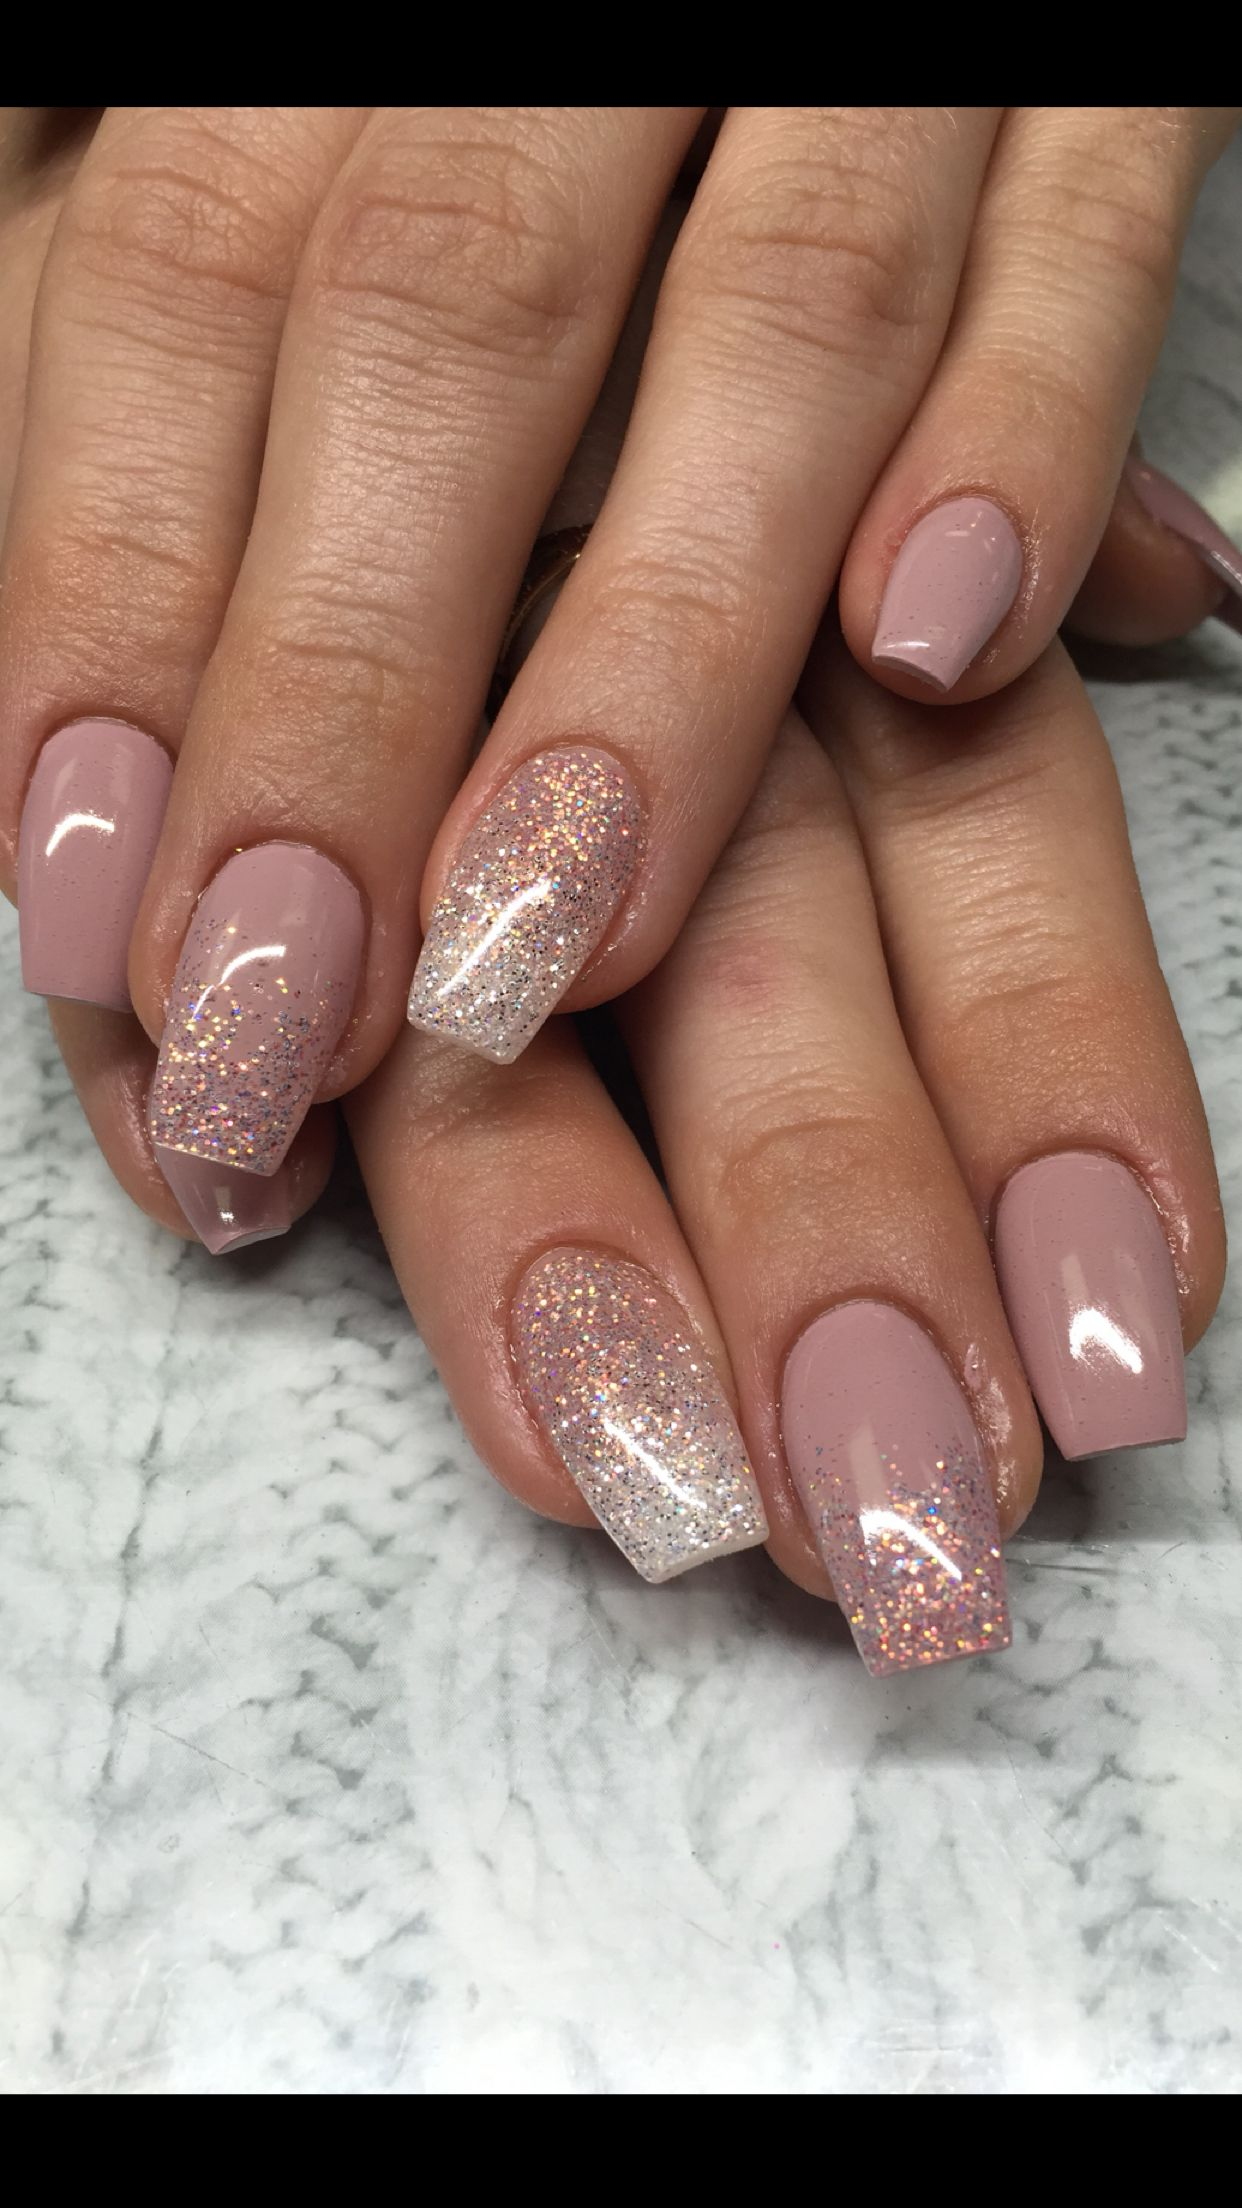 Hard Gel Nails Ballerina Coffin Light Elegance Your Churn With Sweet Nothing And Nothing With Images Hard Gel Nails Perfect Nails Trendy Nails